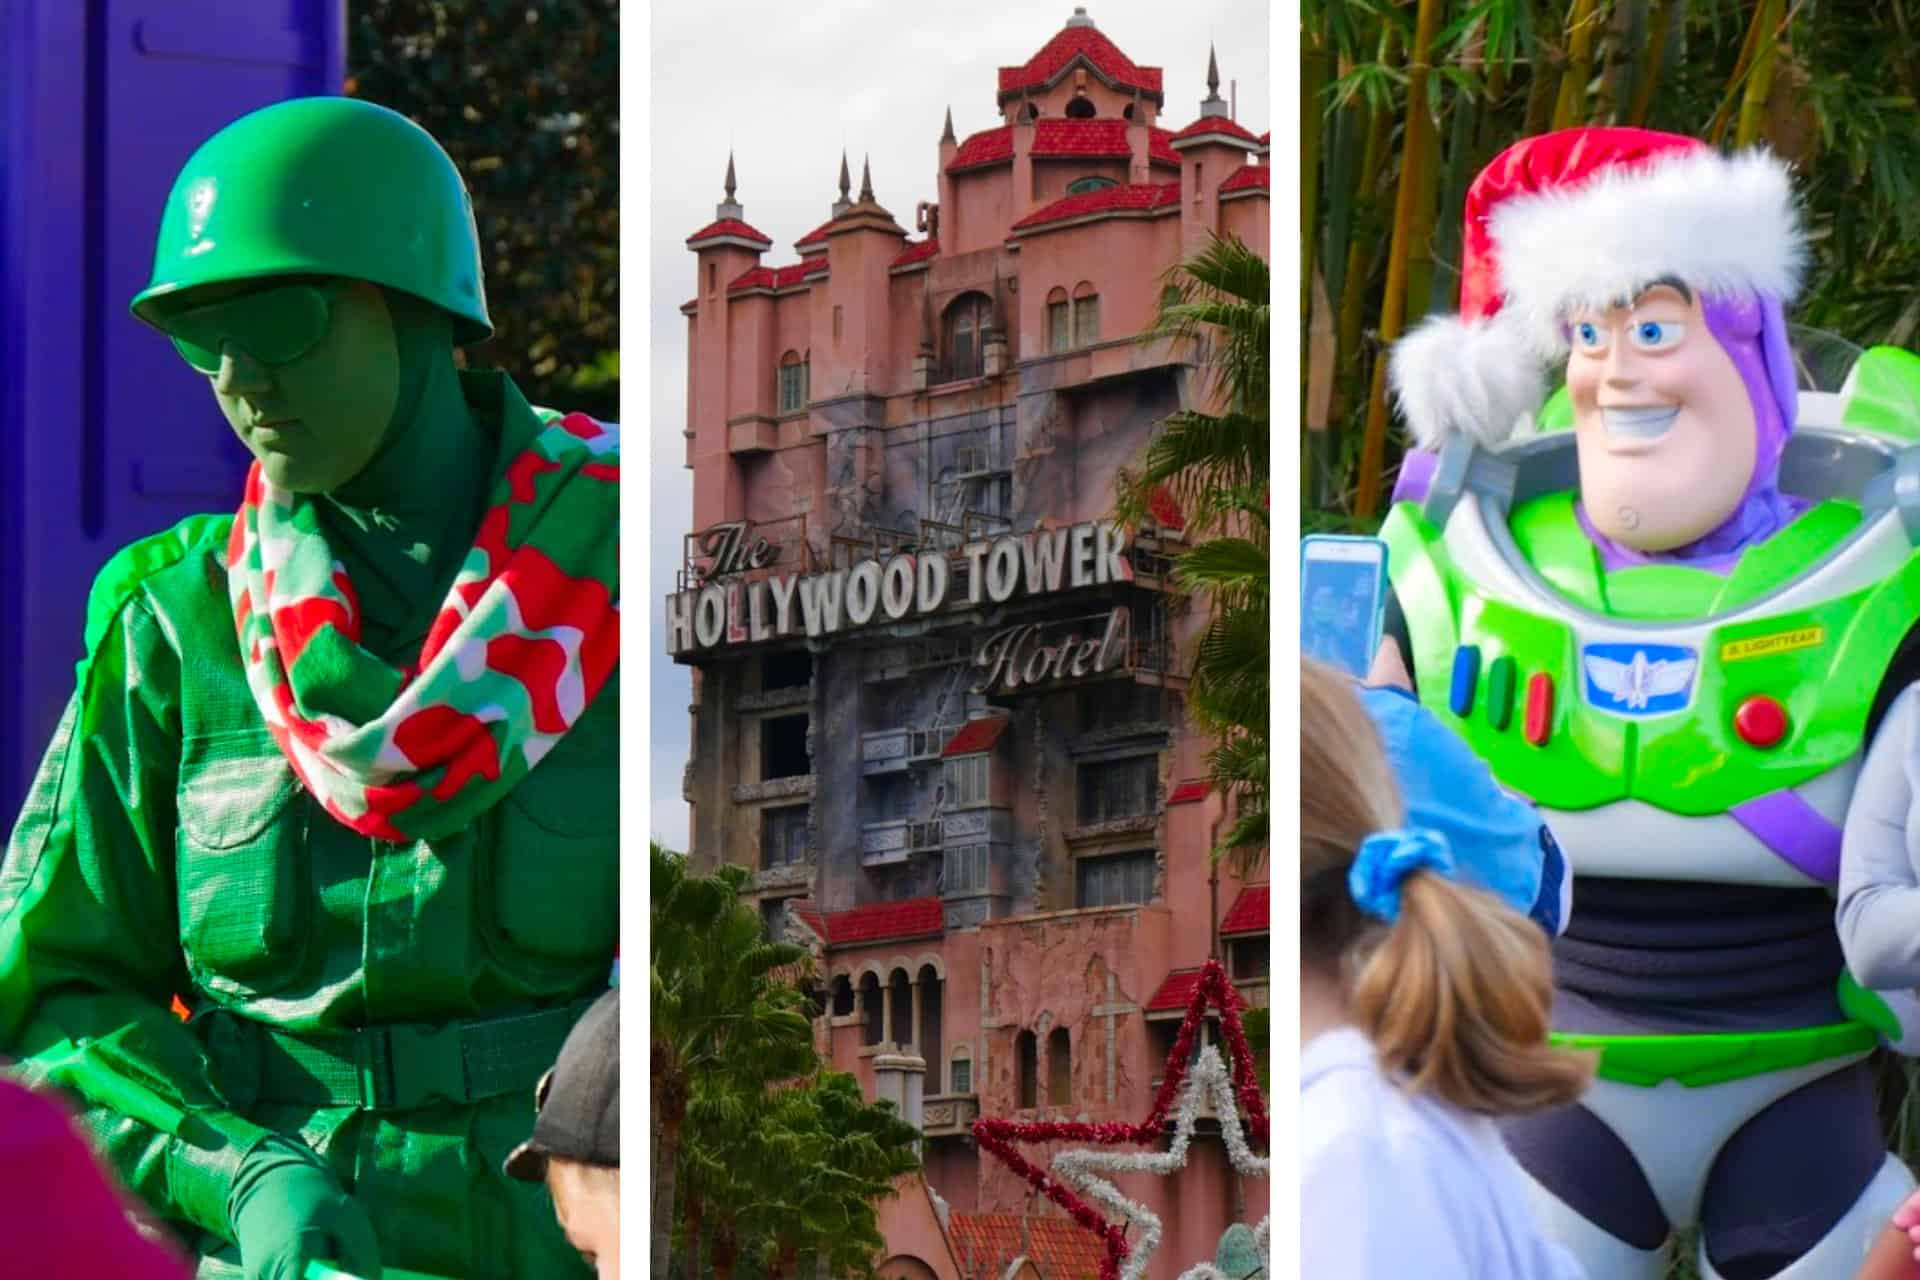 A toy soldier, Buzz Lightyear, and Hollywood Tower Hotel at Disney Hollywood Studios with Christmas decorations